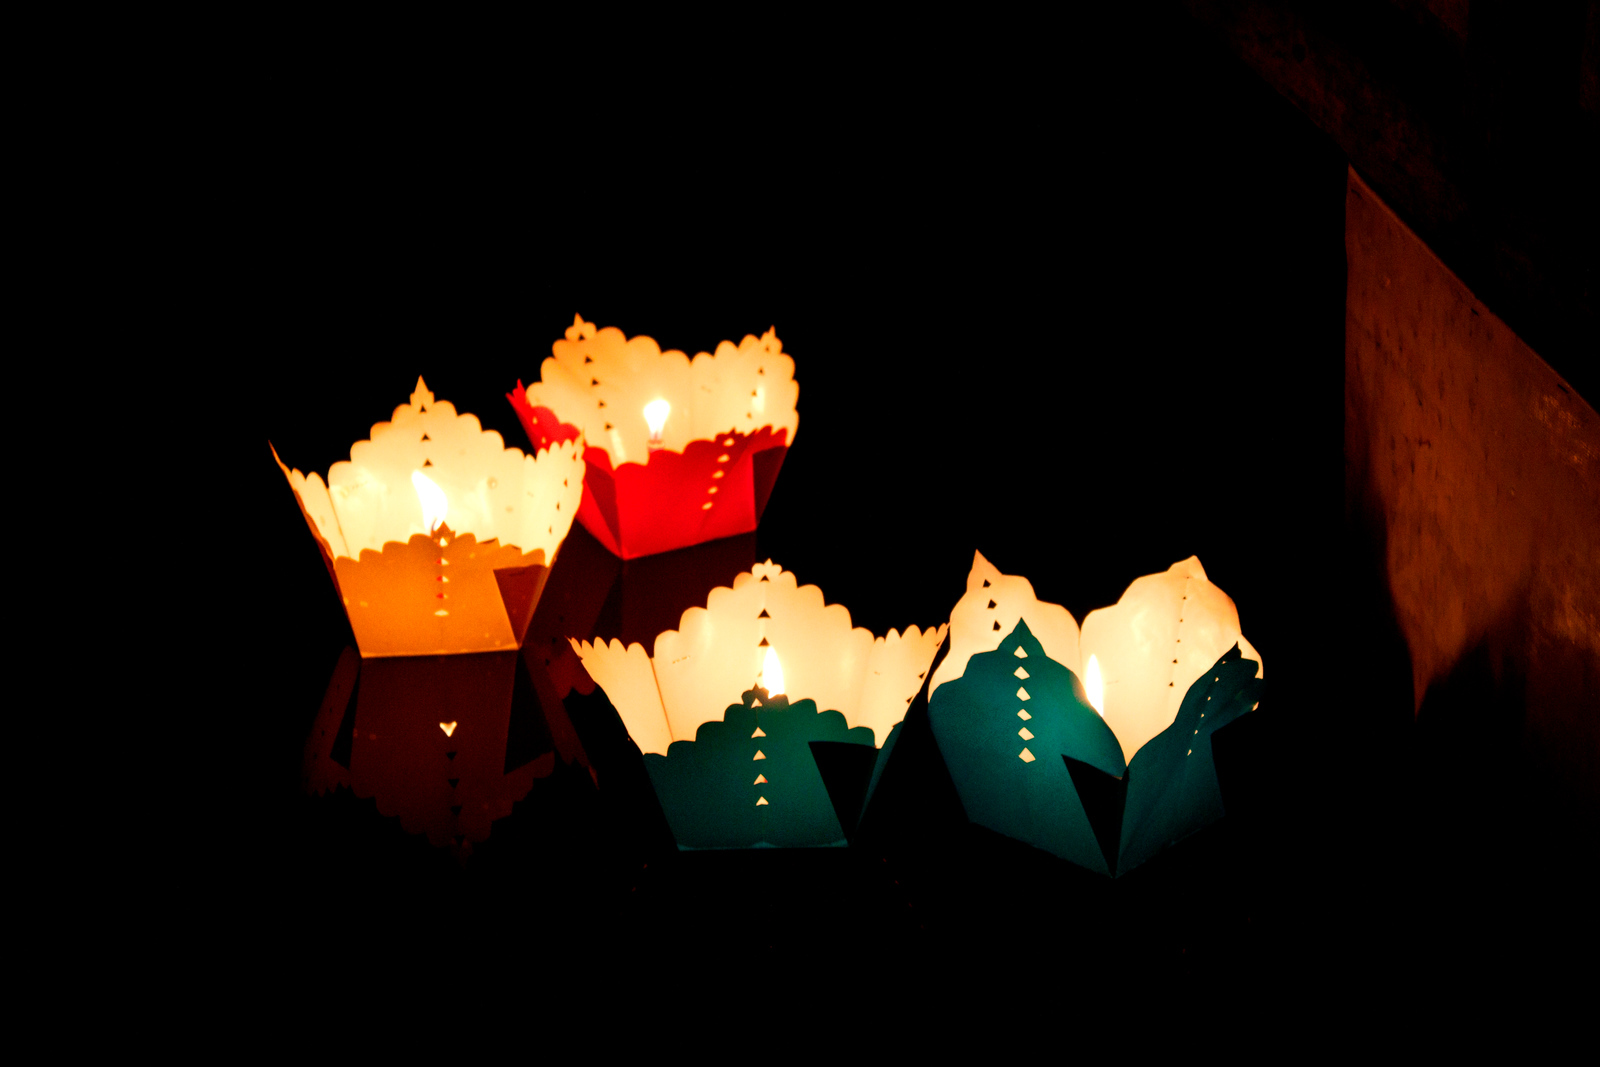 Vietnam - Floating Lanterns v1 (913) -r